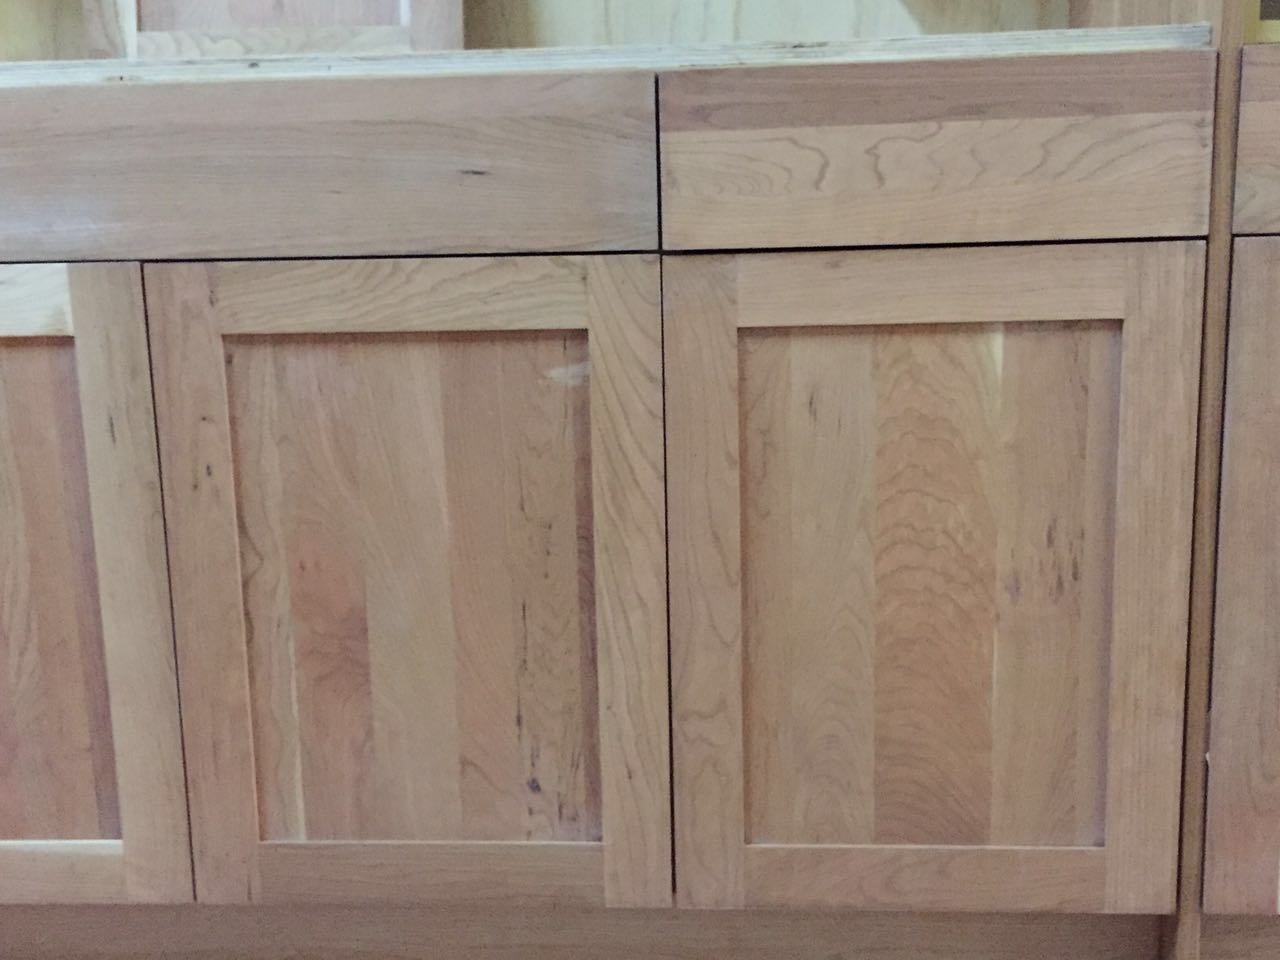 Staining Unfinished Kitchen Cabinets Unfinished Natural American Cherry Shaker Kitchen Cabinets